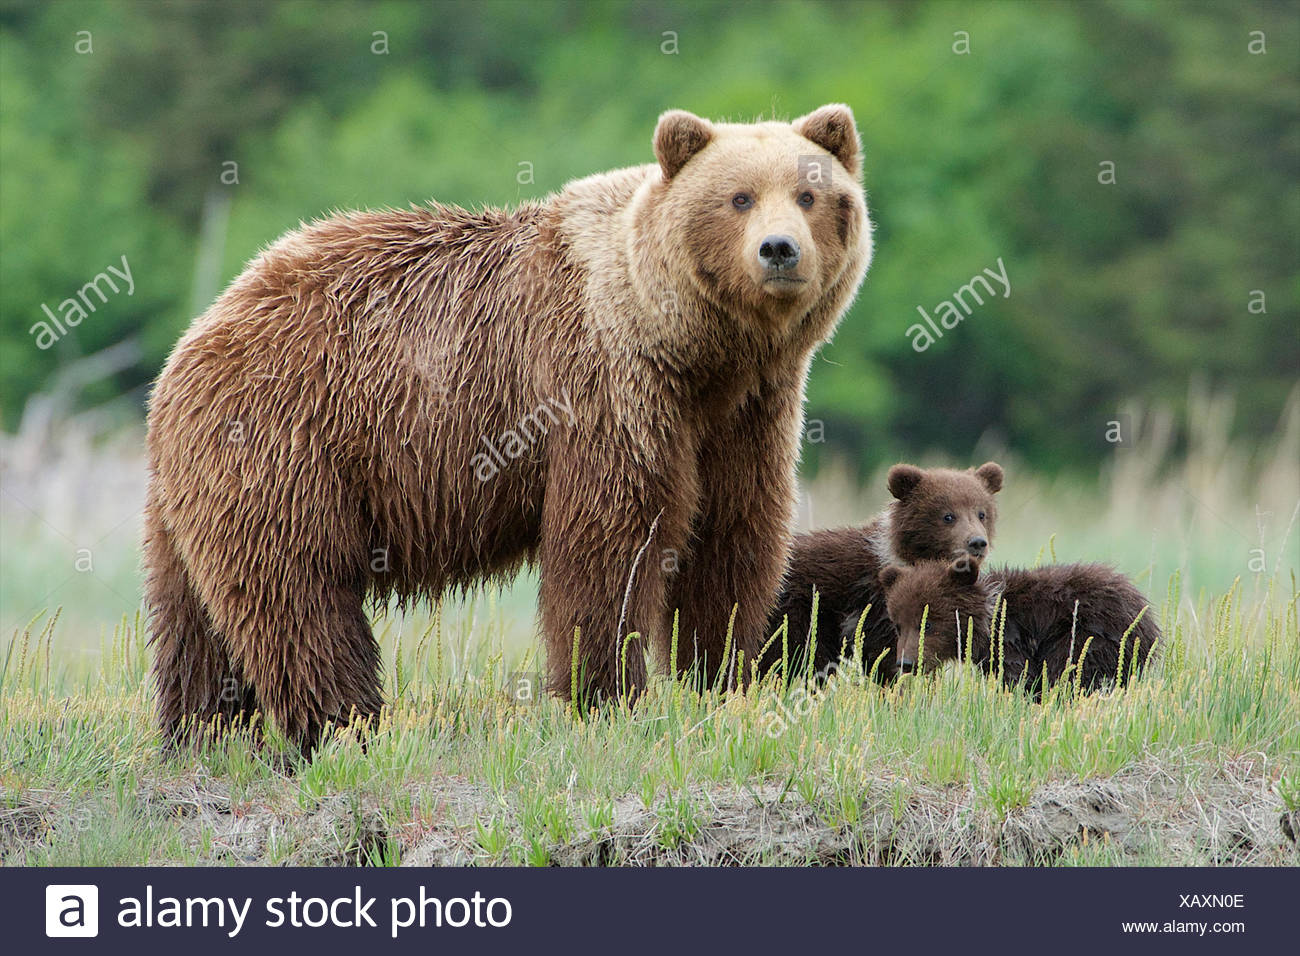 A mother watches closely as another bear approaches. - Stock Image